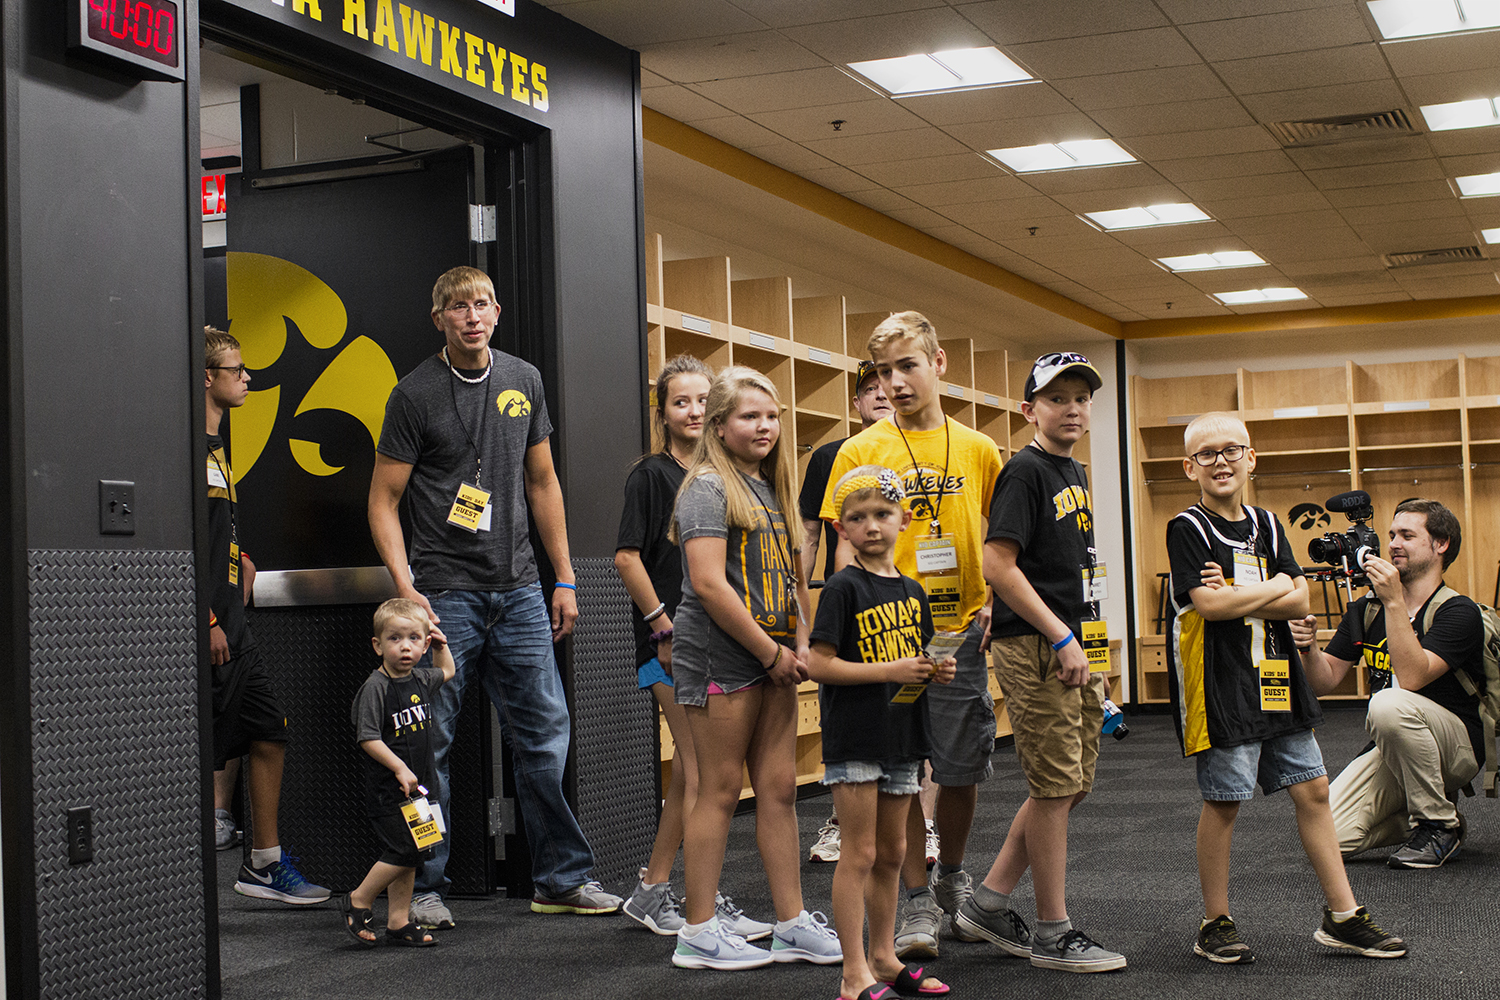 Kid+Captains+enter+the+football+locker+room+during+Iowa+Football+Kids%27+Day+at+Kinnick+Stadium+on+Saturday%2C+Aug.+11%2C+2018.+The+2018+Kid+Captains+met+the+Iowa+football+team+and+participated+in+a+behind-the-scenes+tour+of+Kinnick+Stadium.